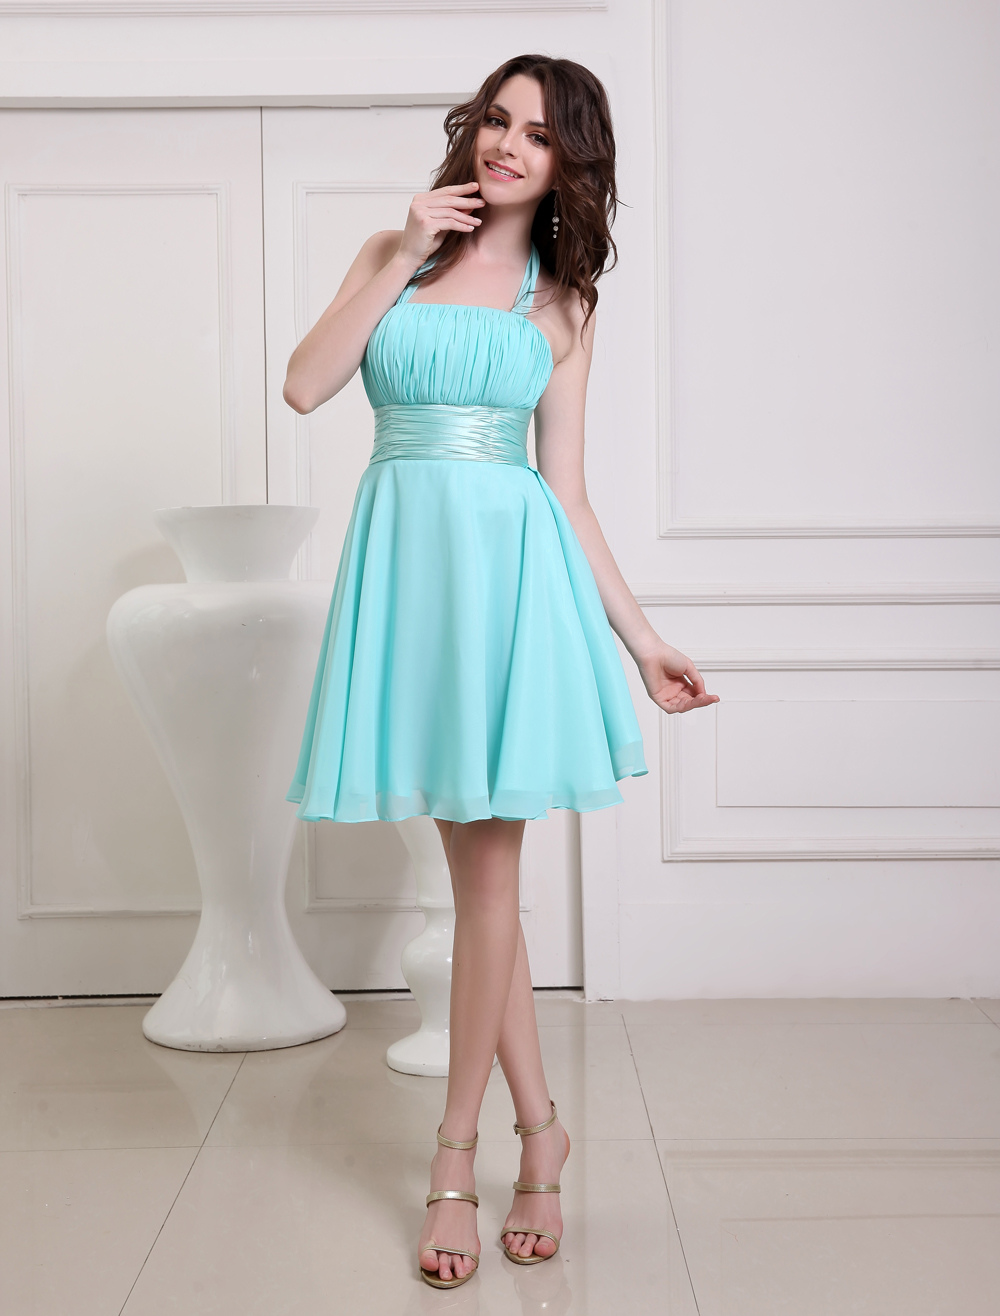 Ocean Blue Prom Dress Straps Sash Lace Up Bow Chiffon Dress ...